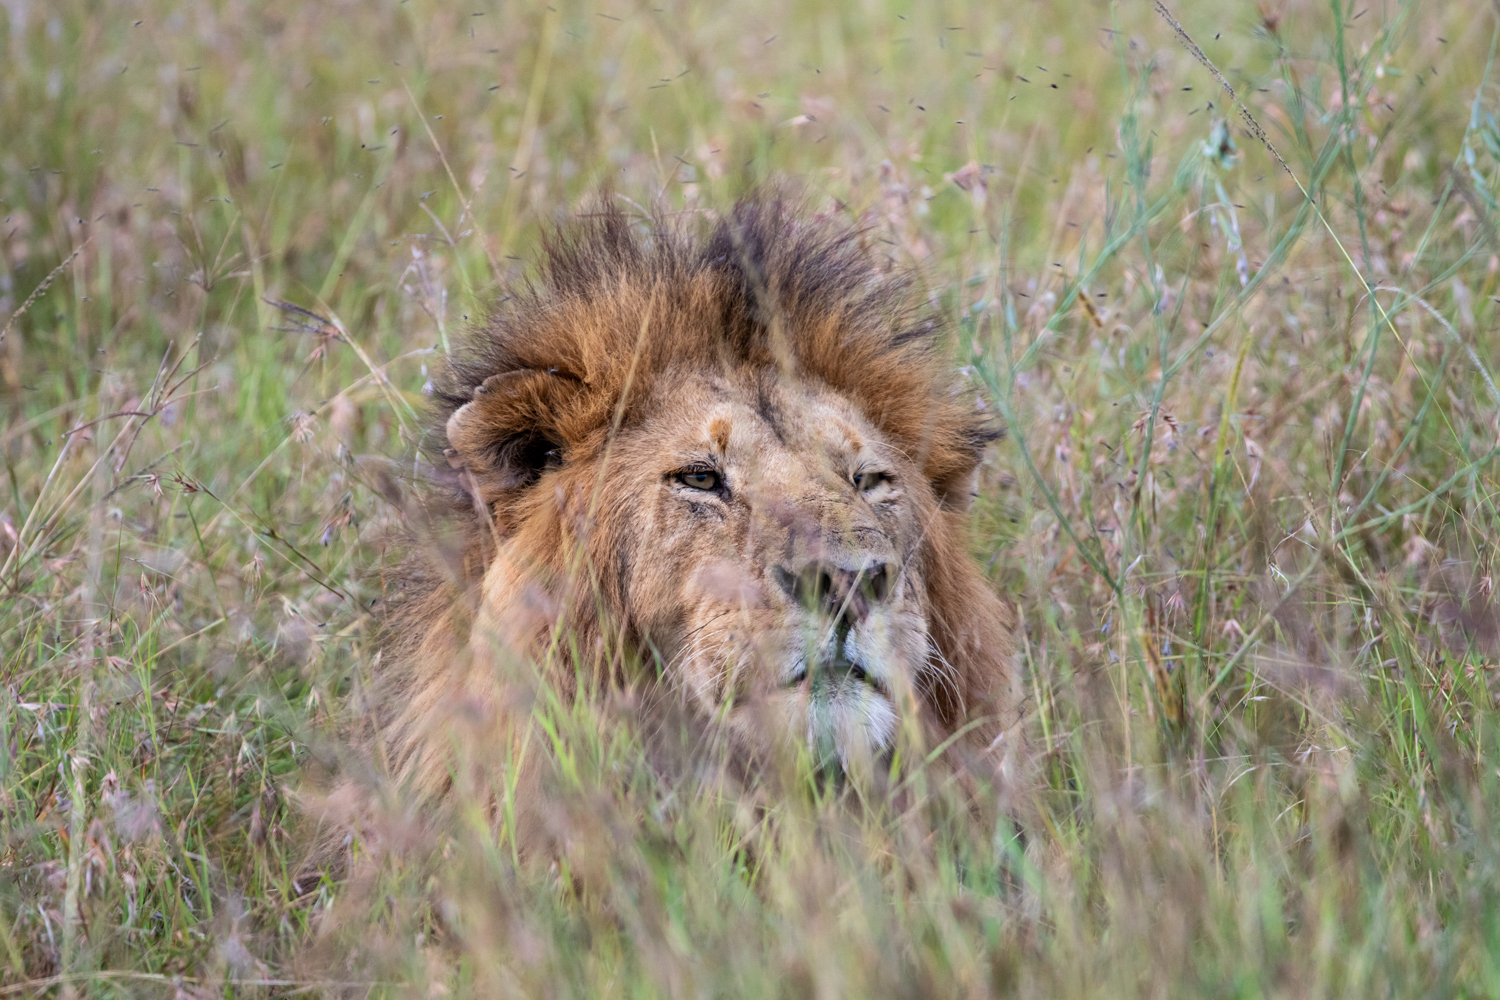 MALE LION IN THE GRASS